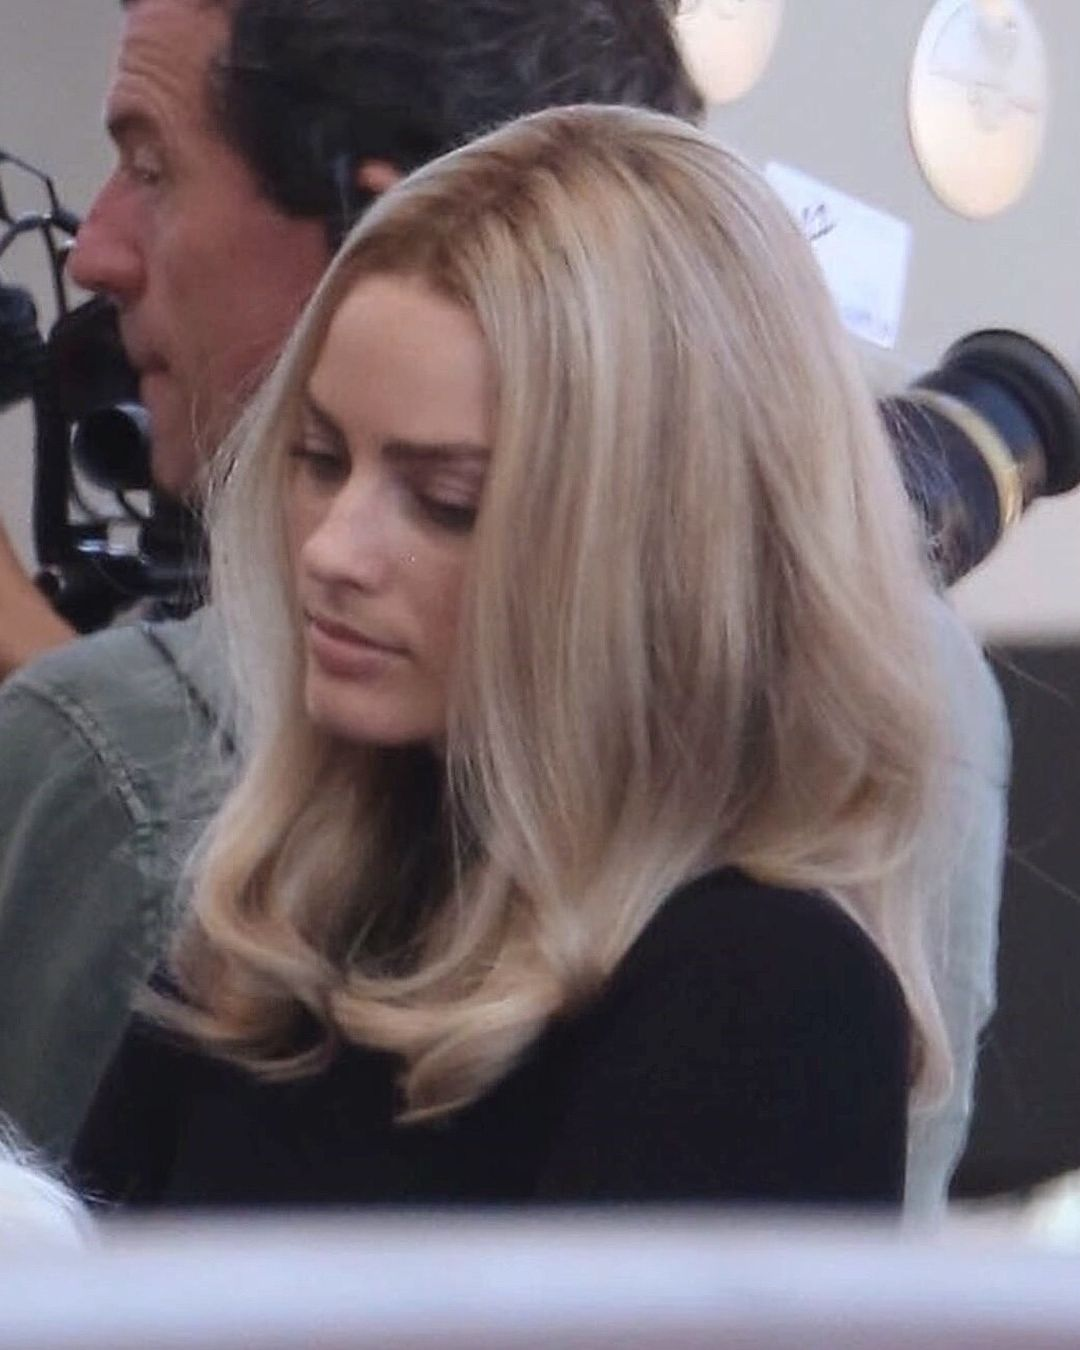 Margot Robbie As Sharon Tate On The Set Of Once Upon A Time In Hollywood Margotrobbie Onceuponatimeinhollywood Hair Cool Hairstyles Margot Robbie Hair